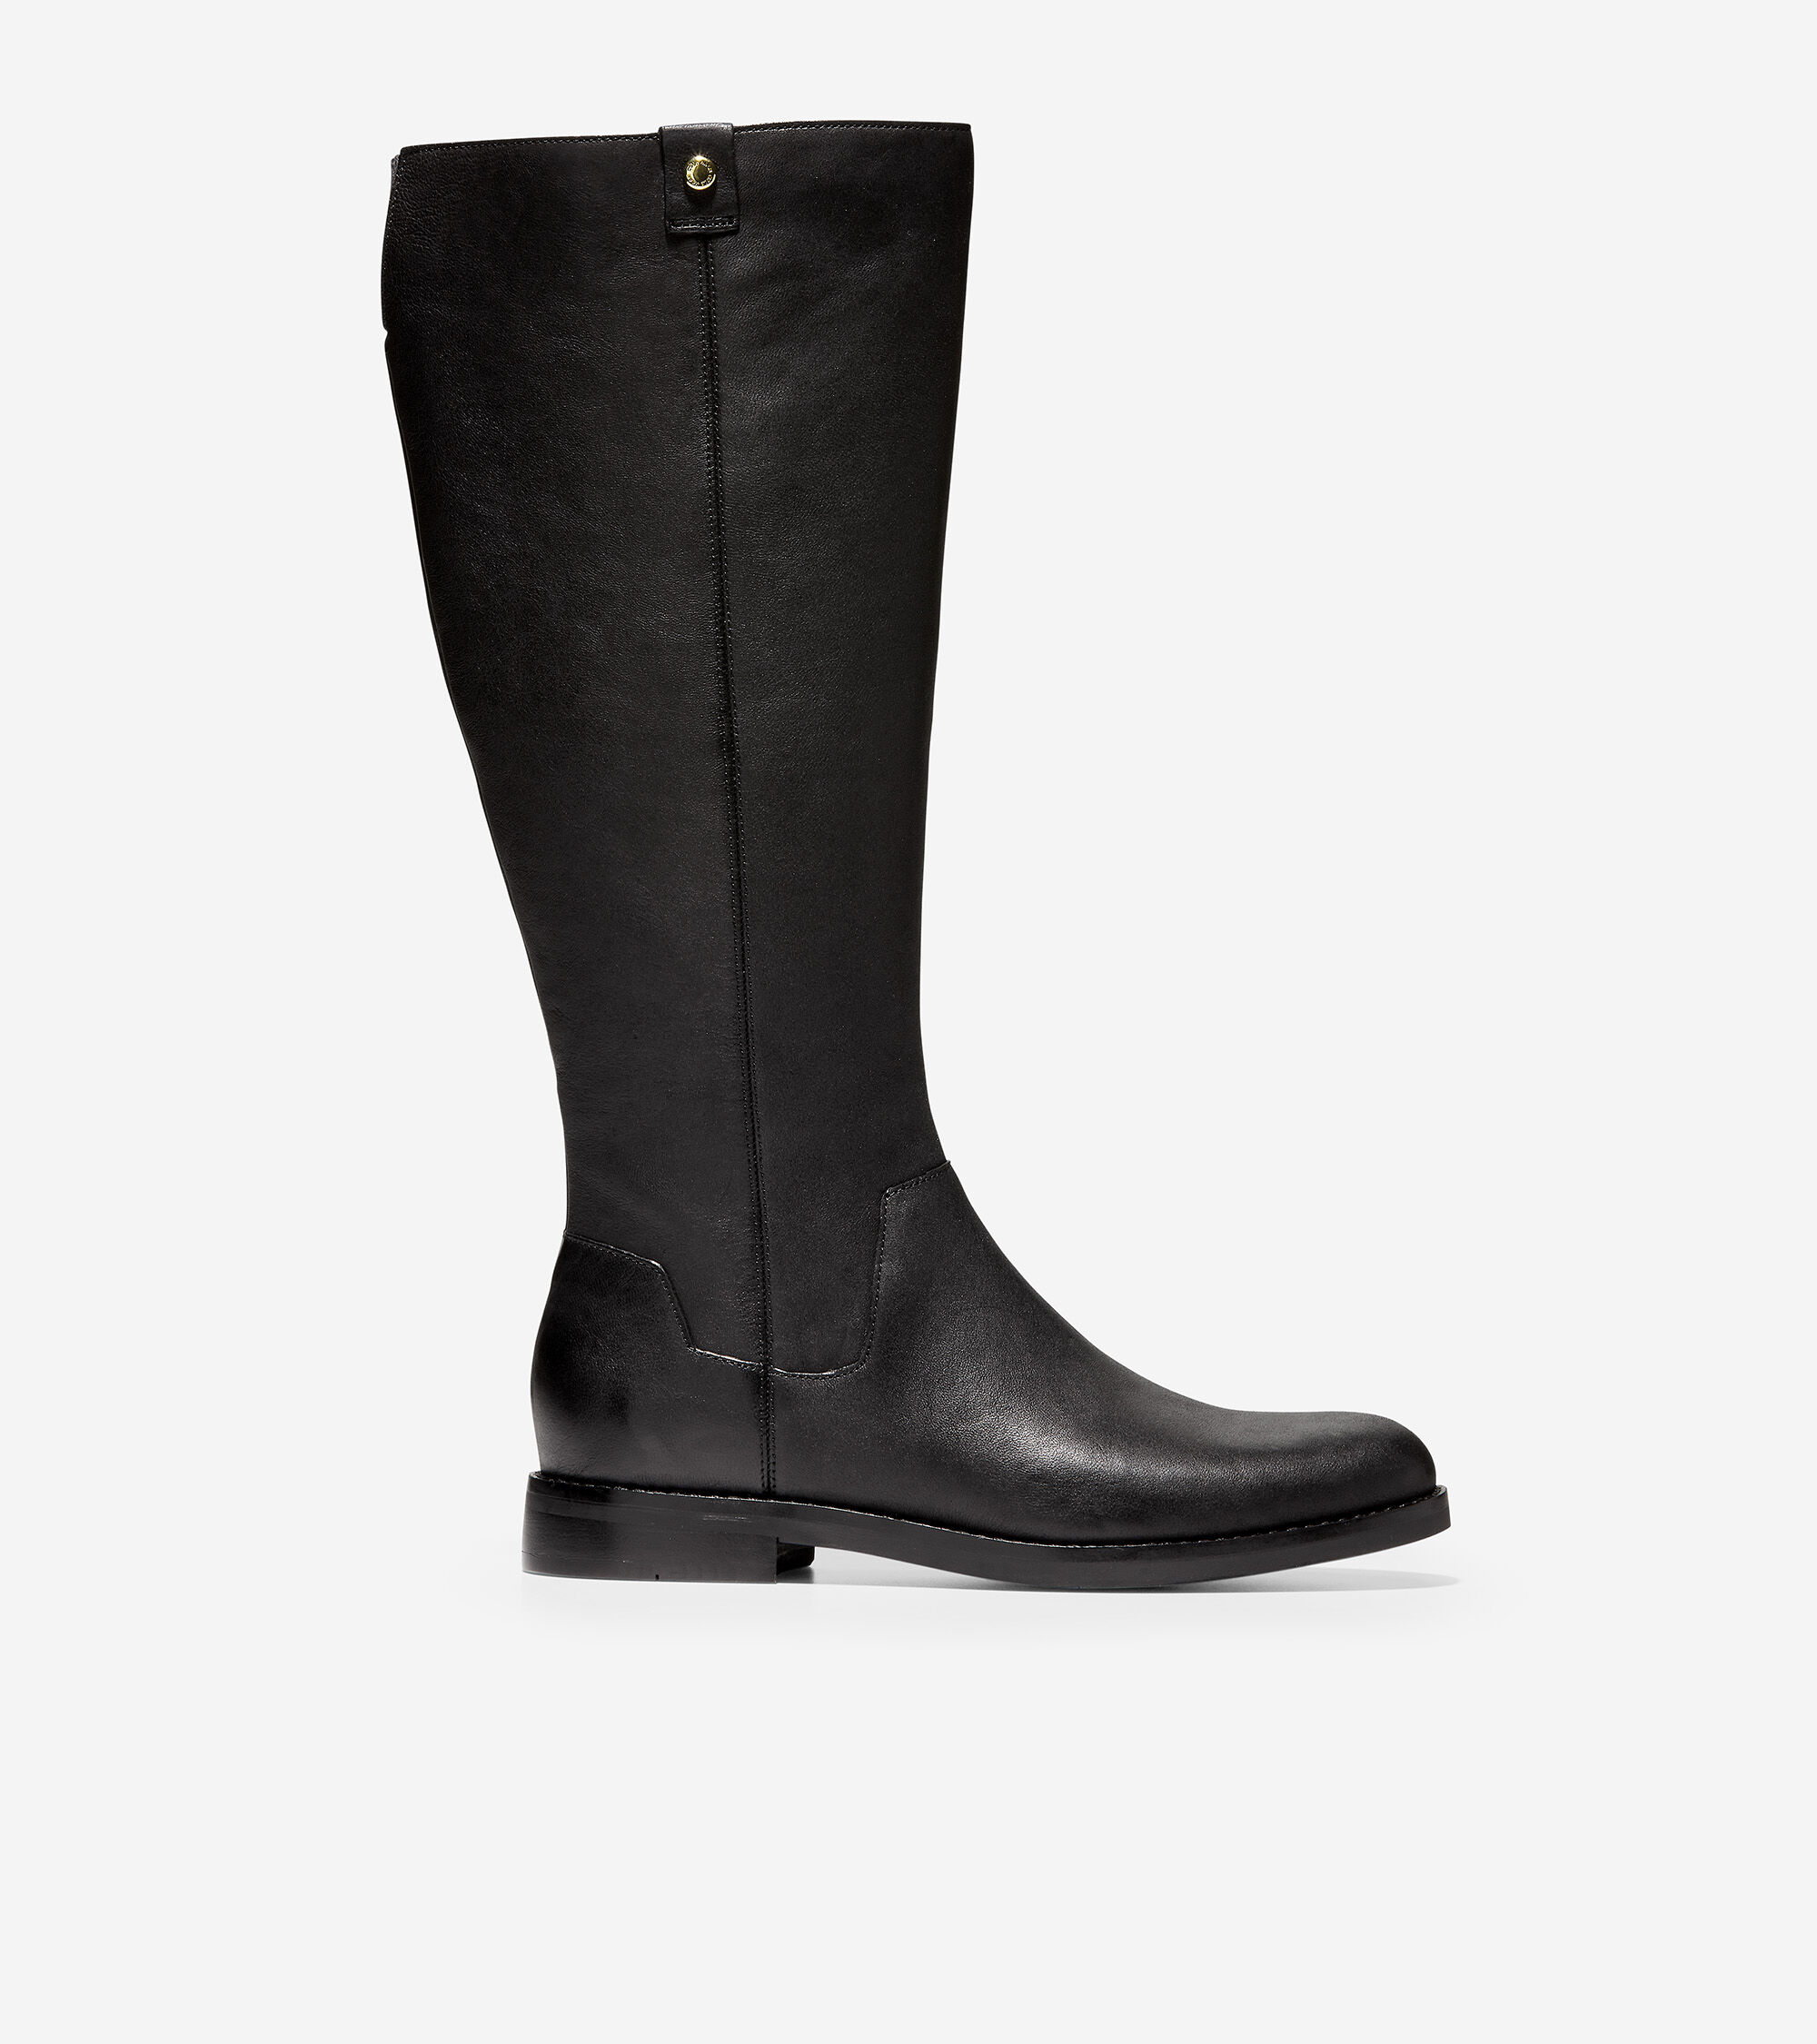 Calissa Riding Boot in Black Leather